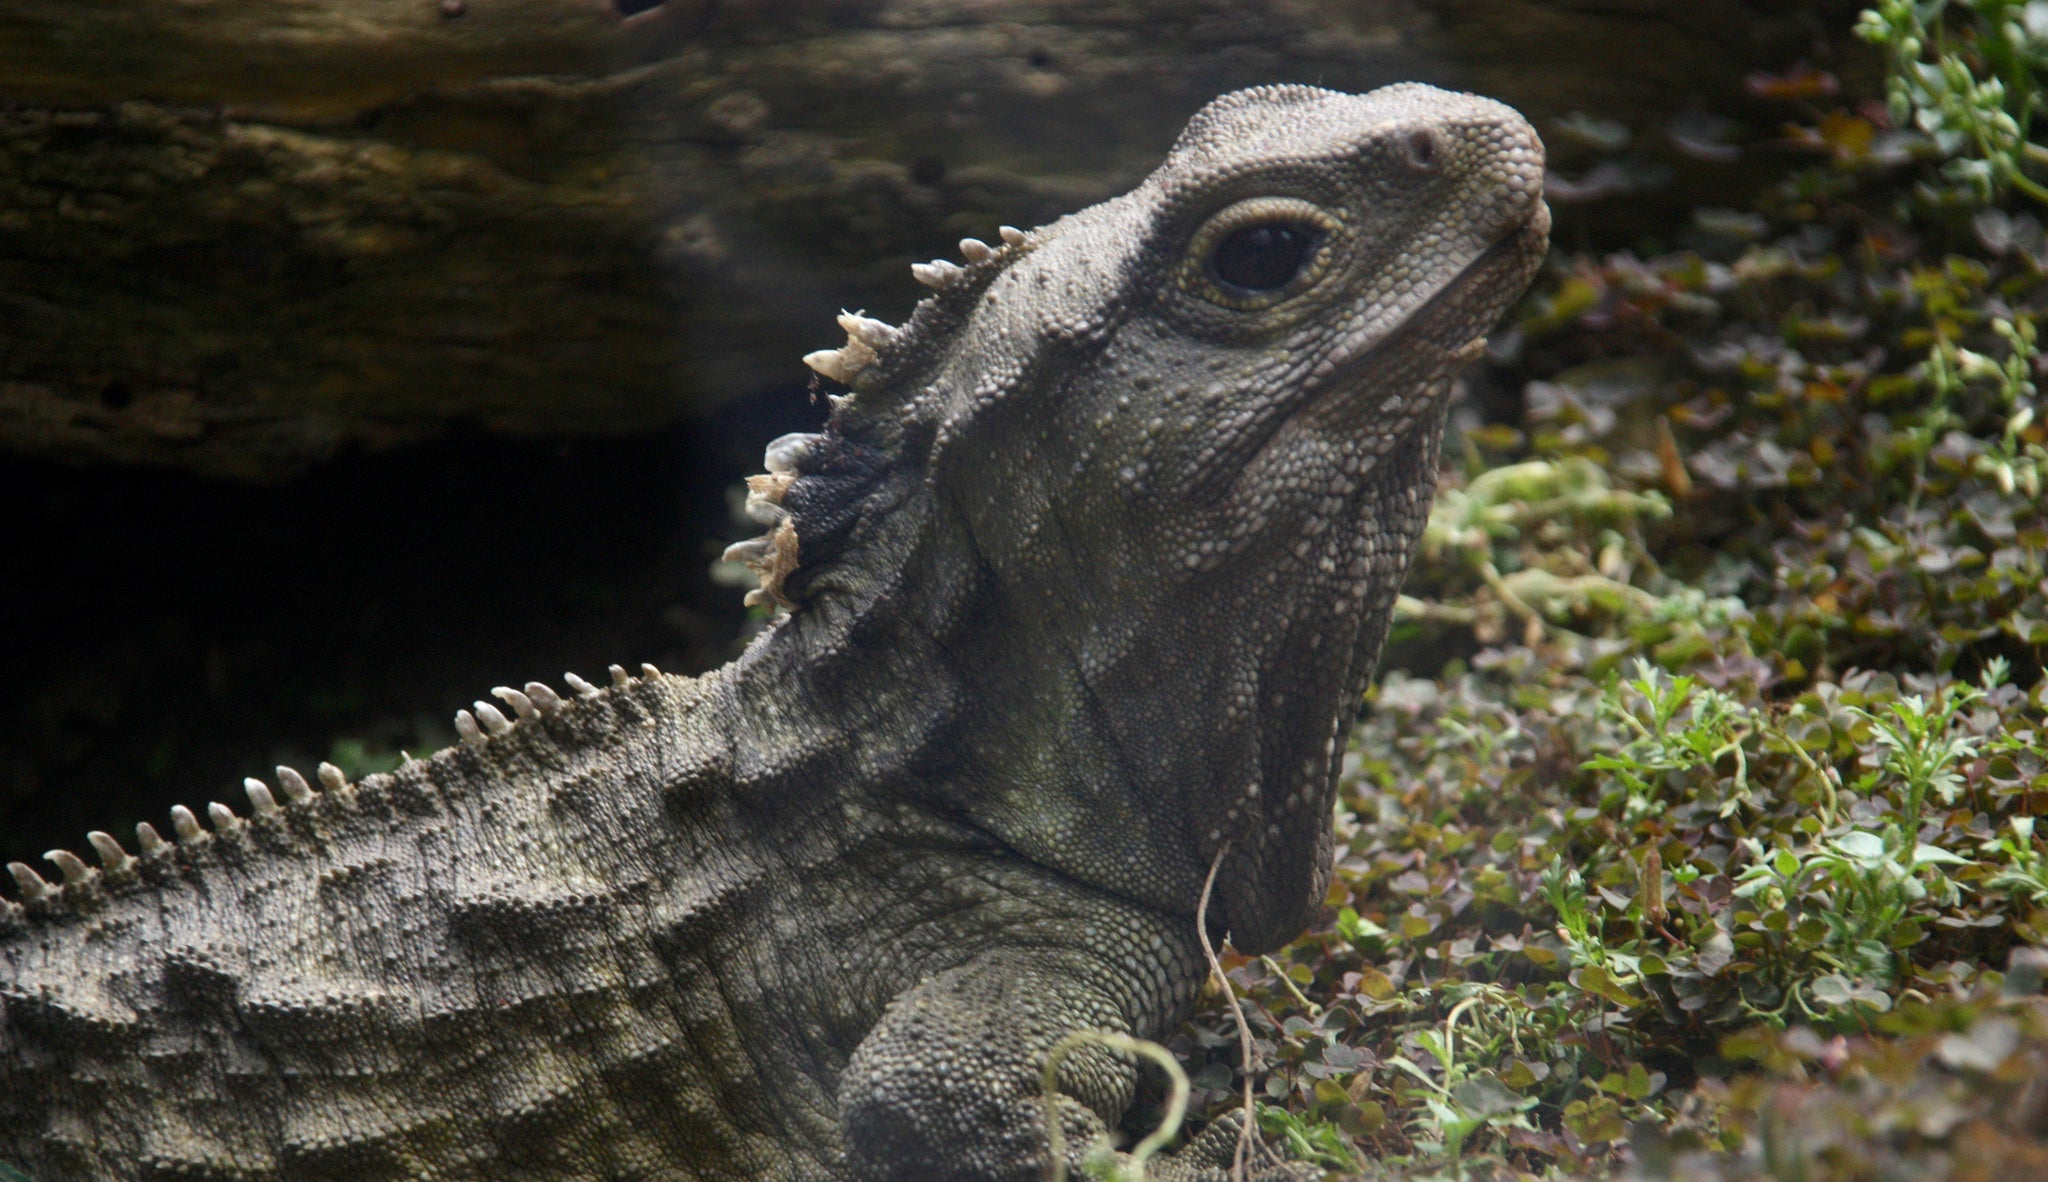 A Reptile With No Penis Just Solved a Baffling Scientific Mystery